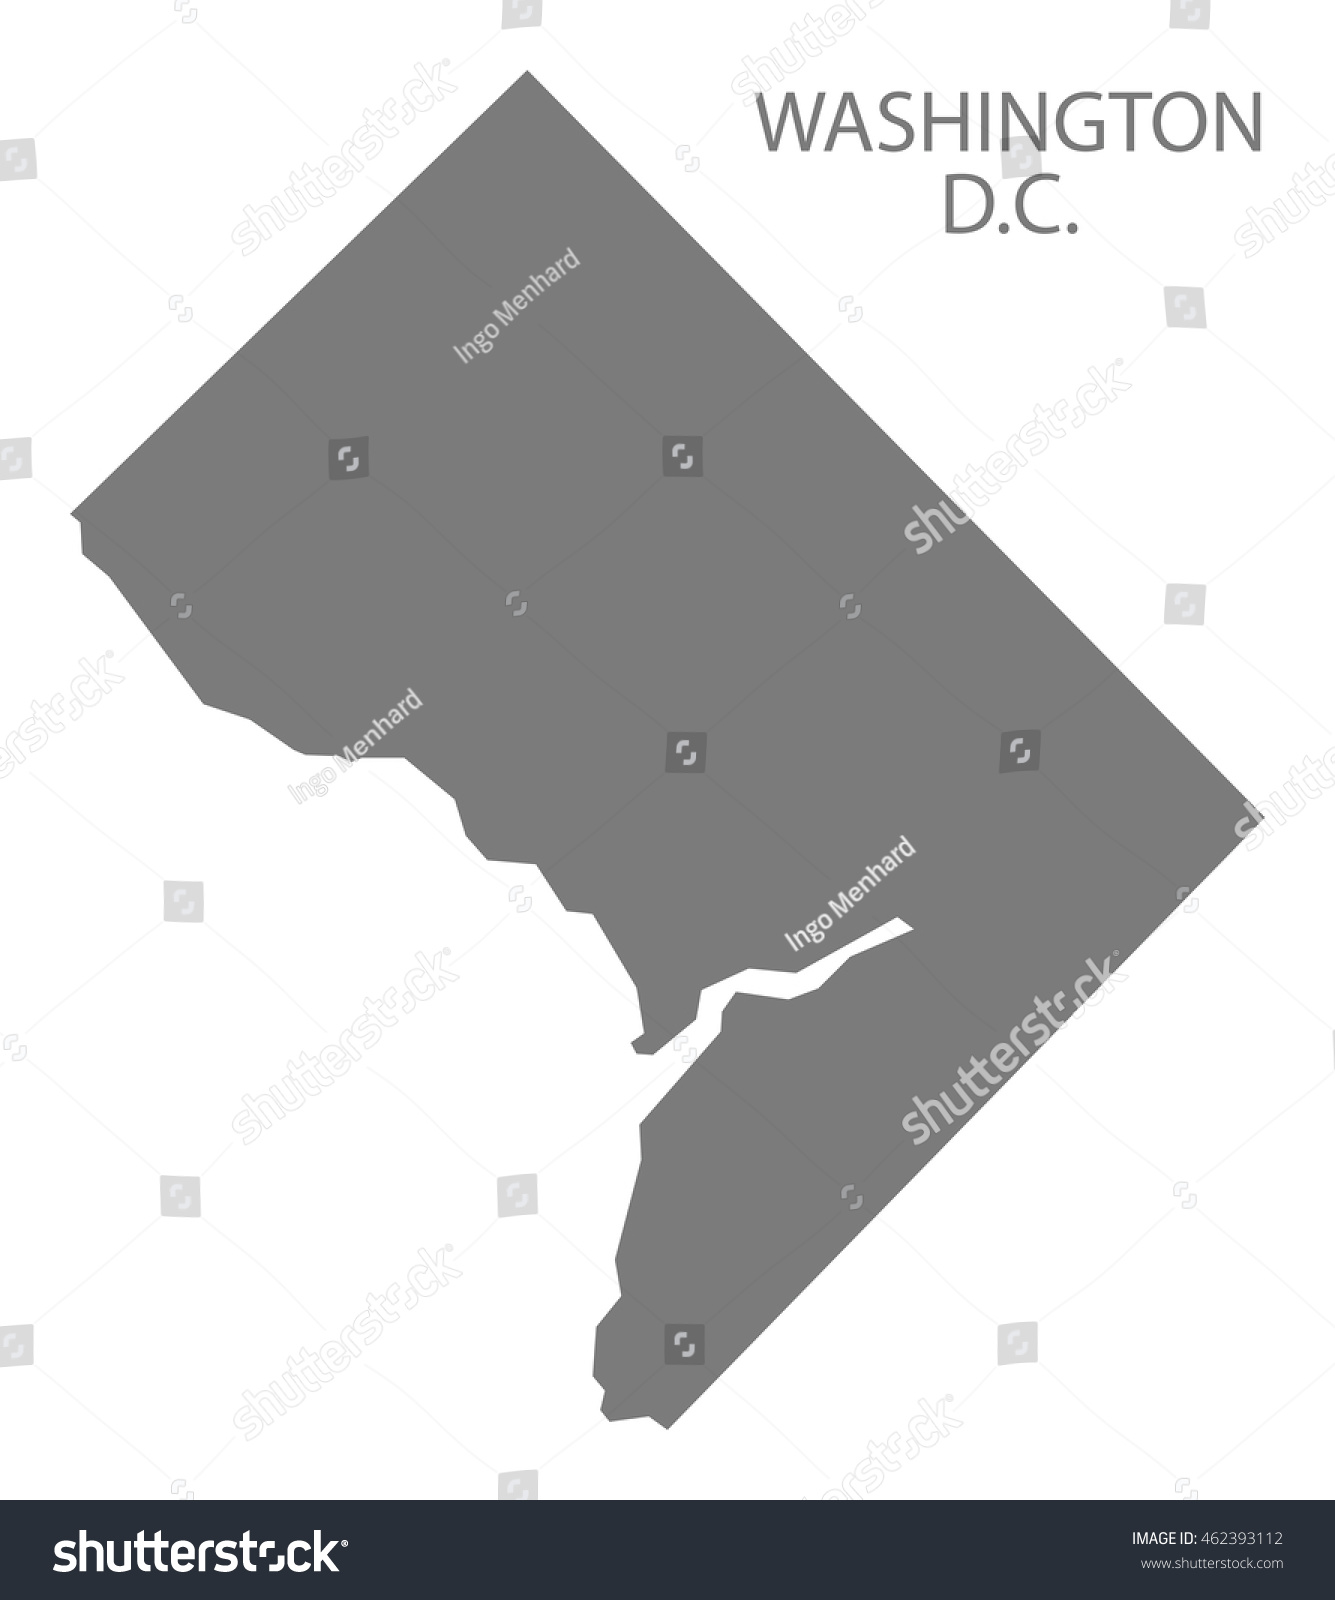 Washington Dc Usa Map Grey Stock Vector Shutterstock - Washington dc usa map